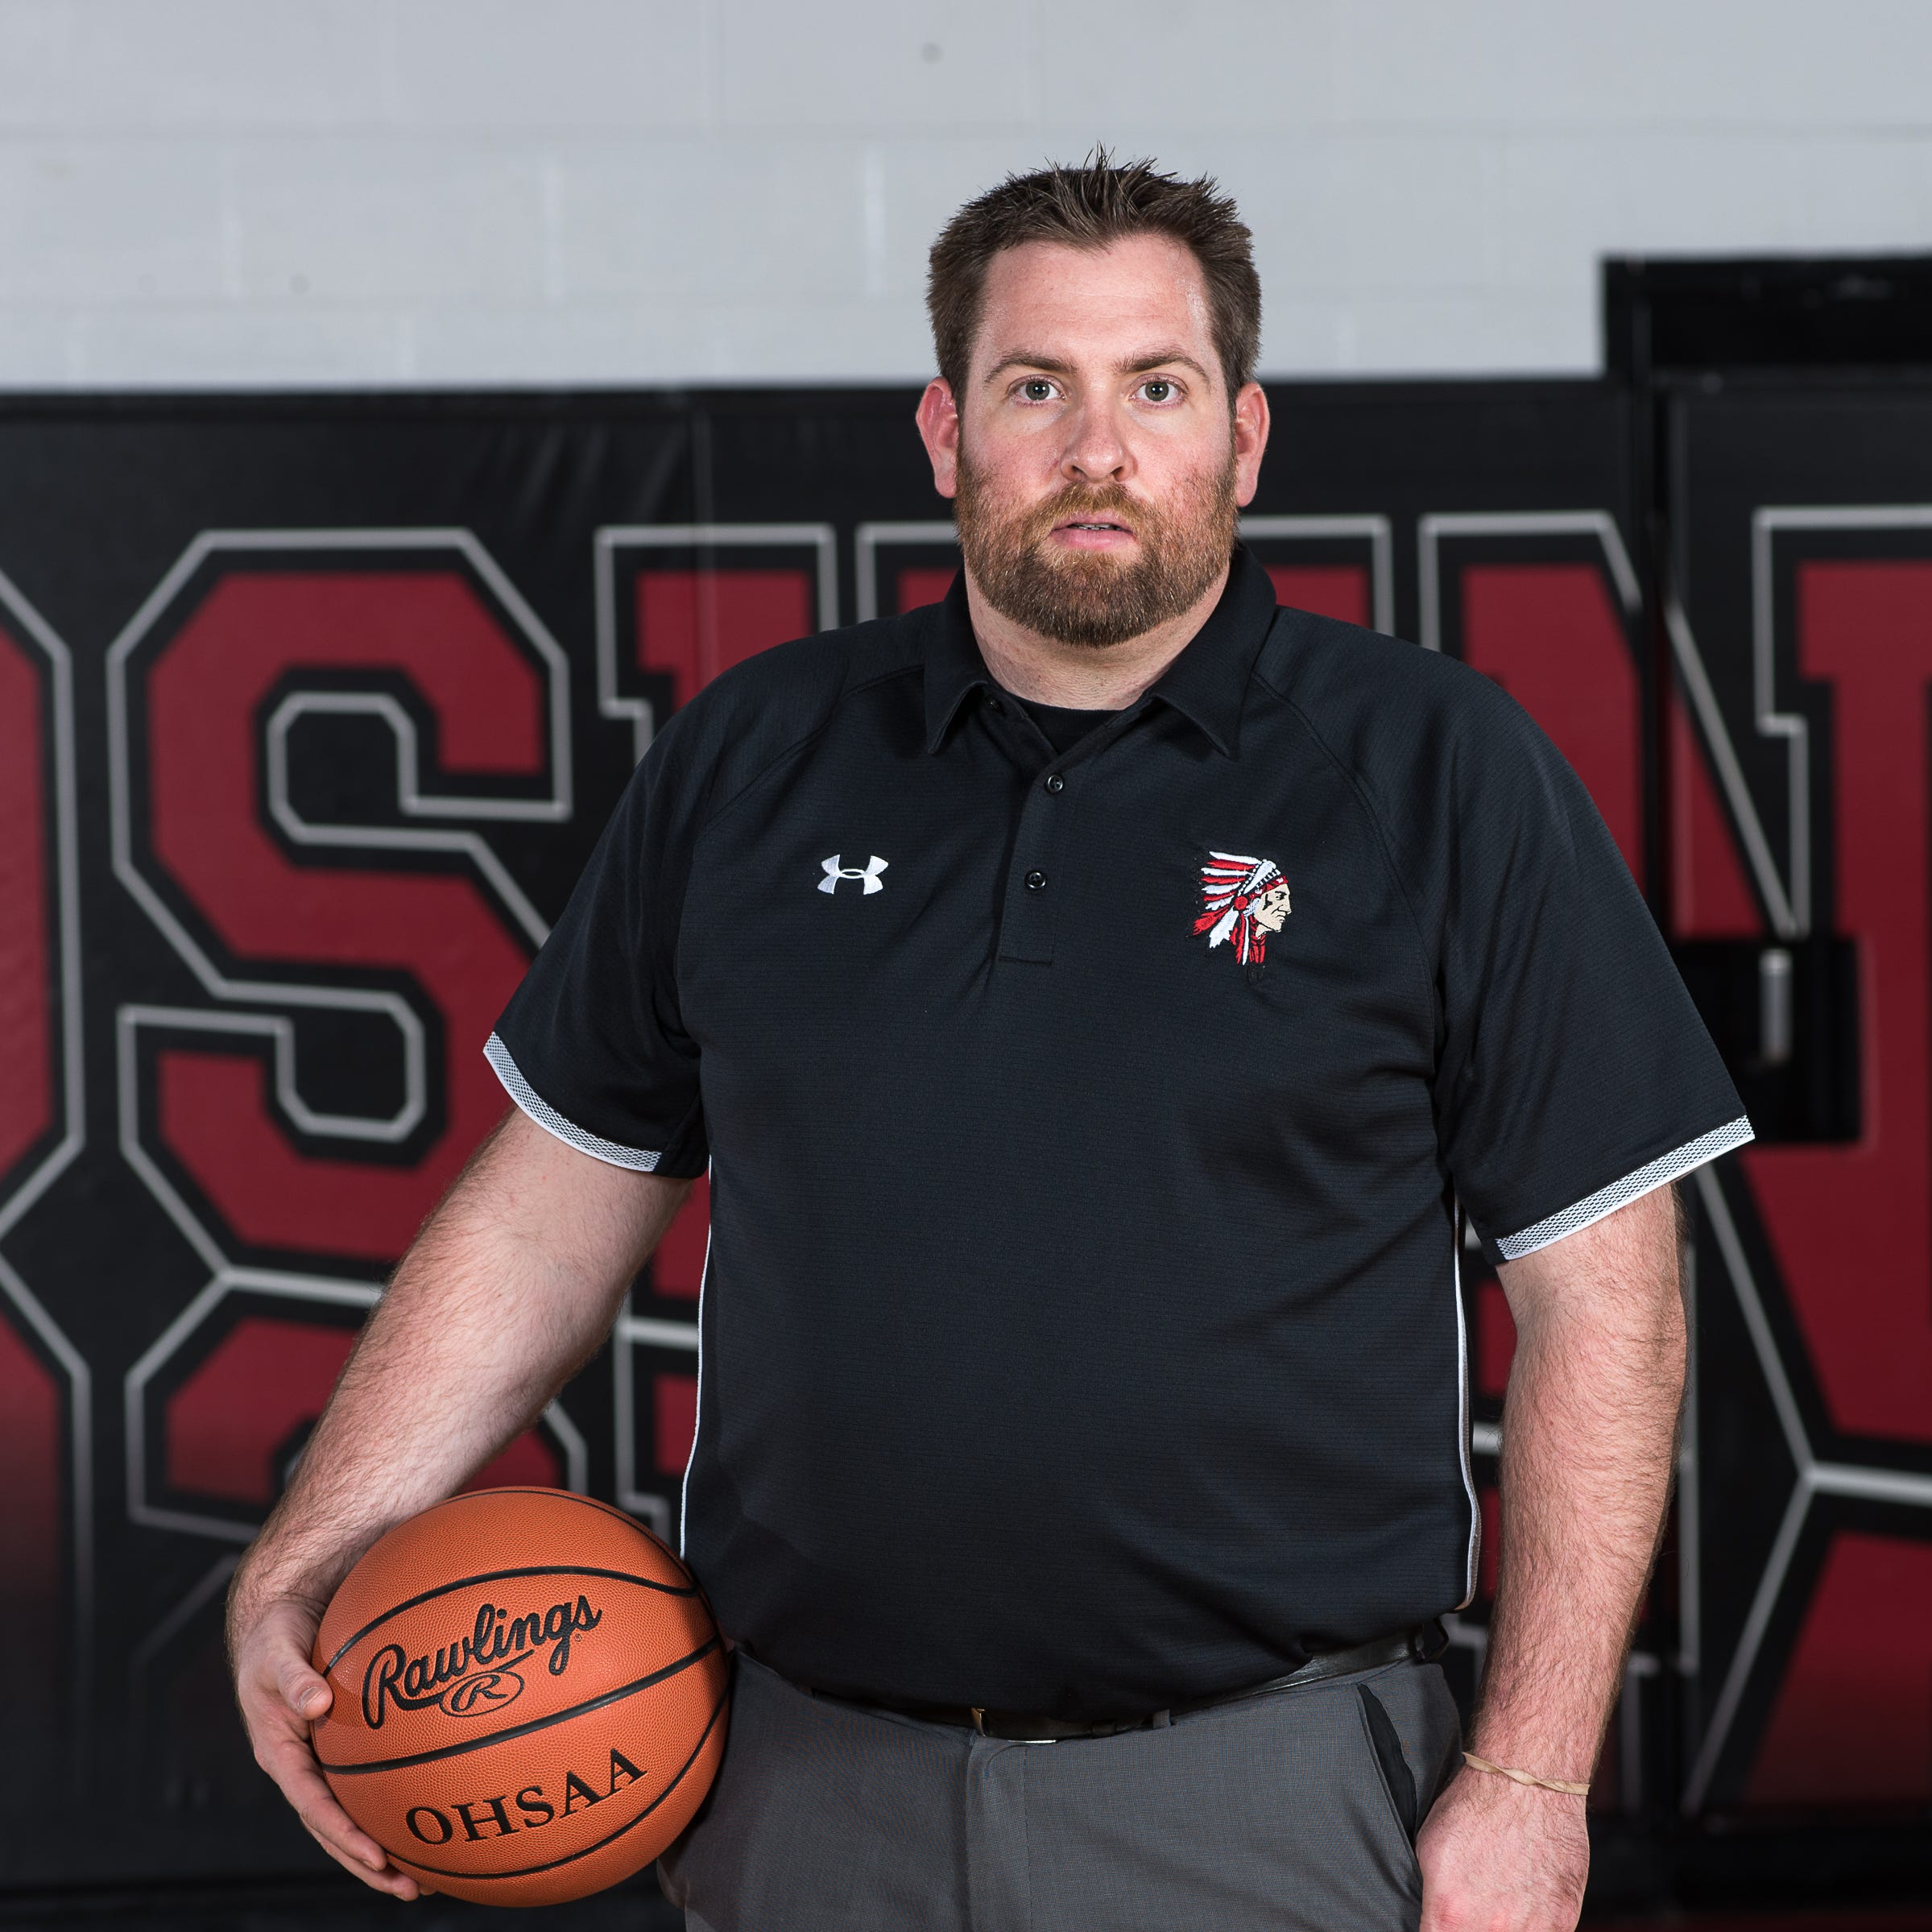 Ady steps down as Coshocton boys basketball coach